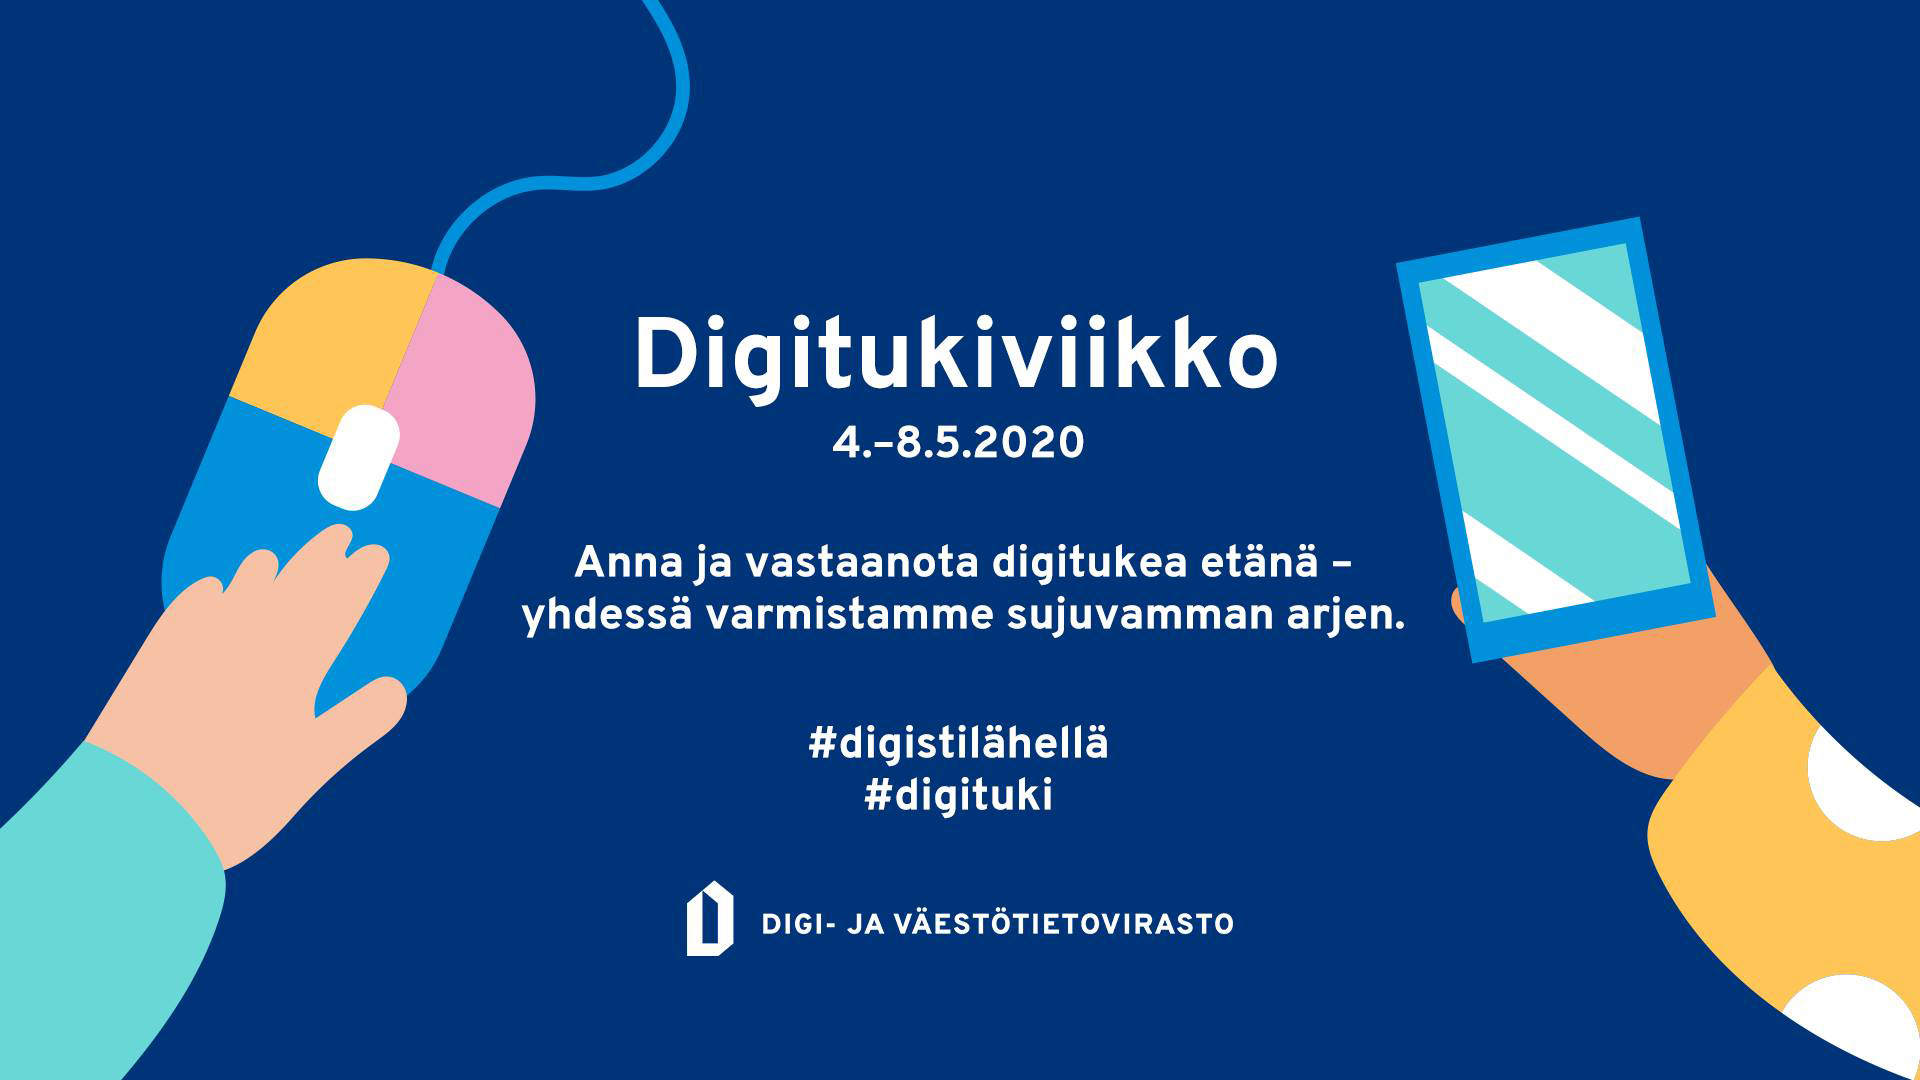 Digitukiviikon mainosbanneri.